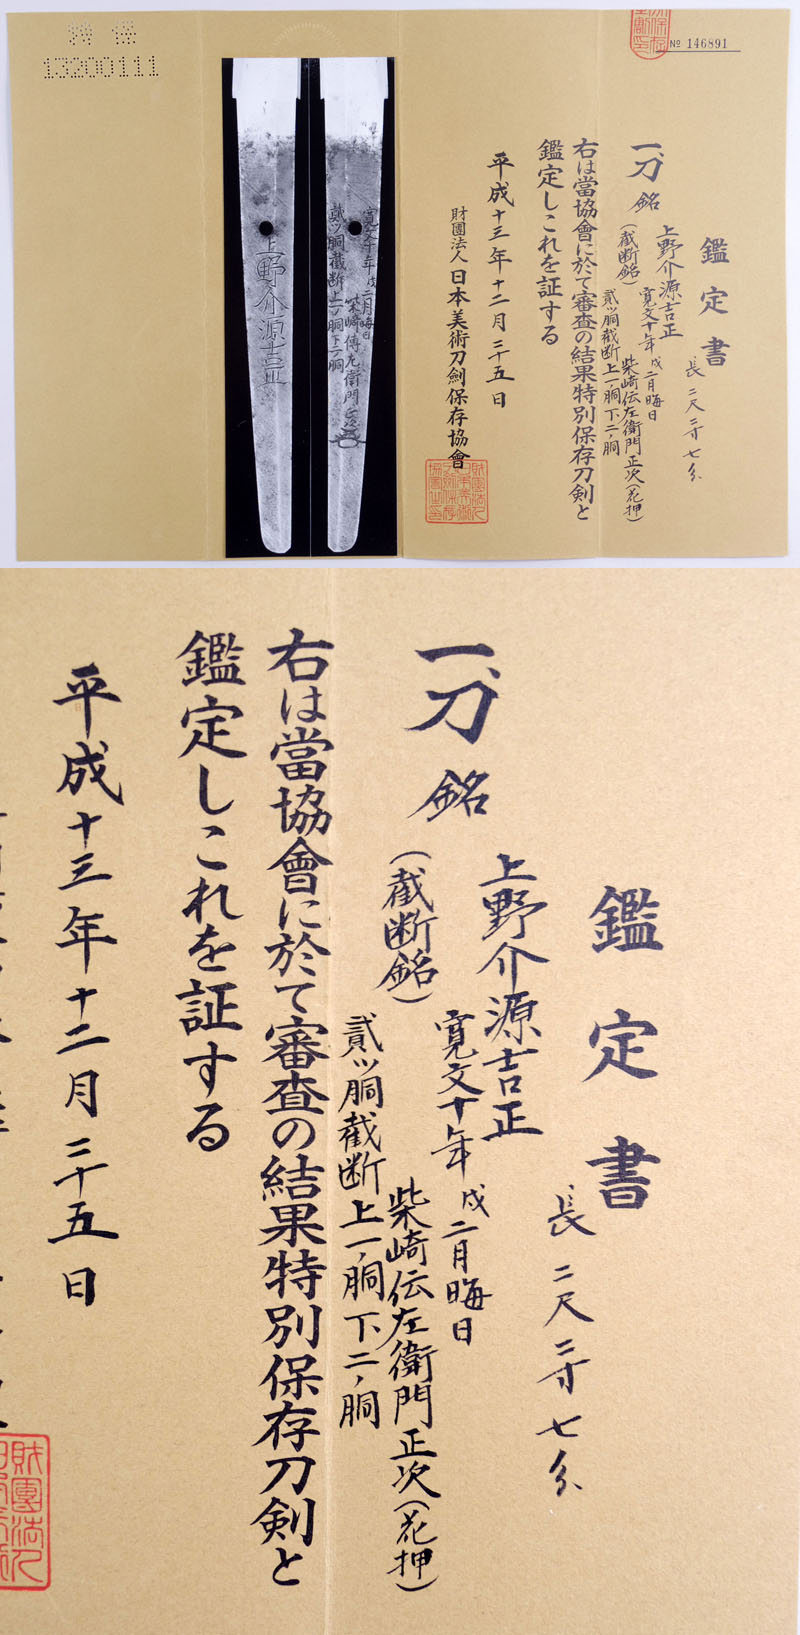 上野介源吉正 Picture of Certificate